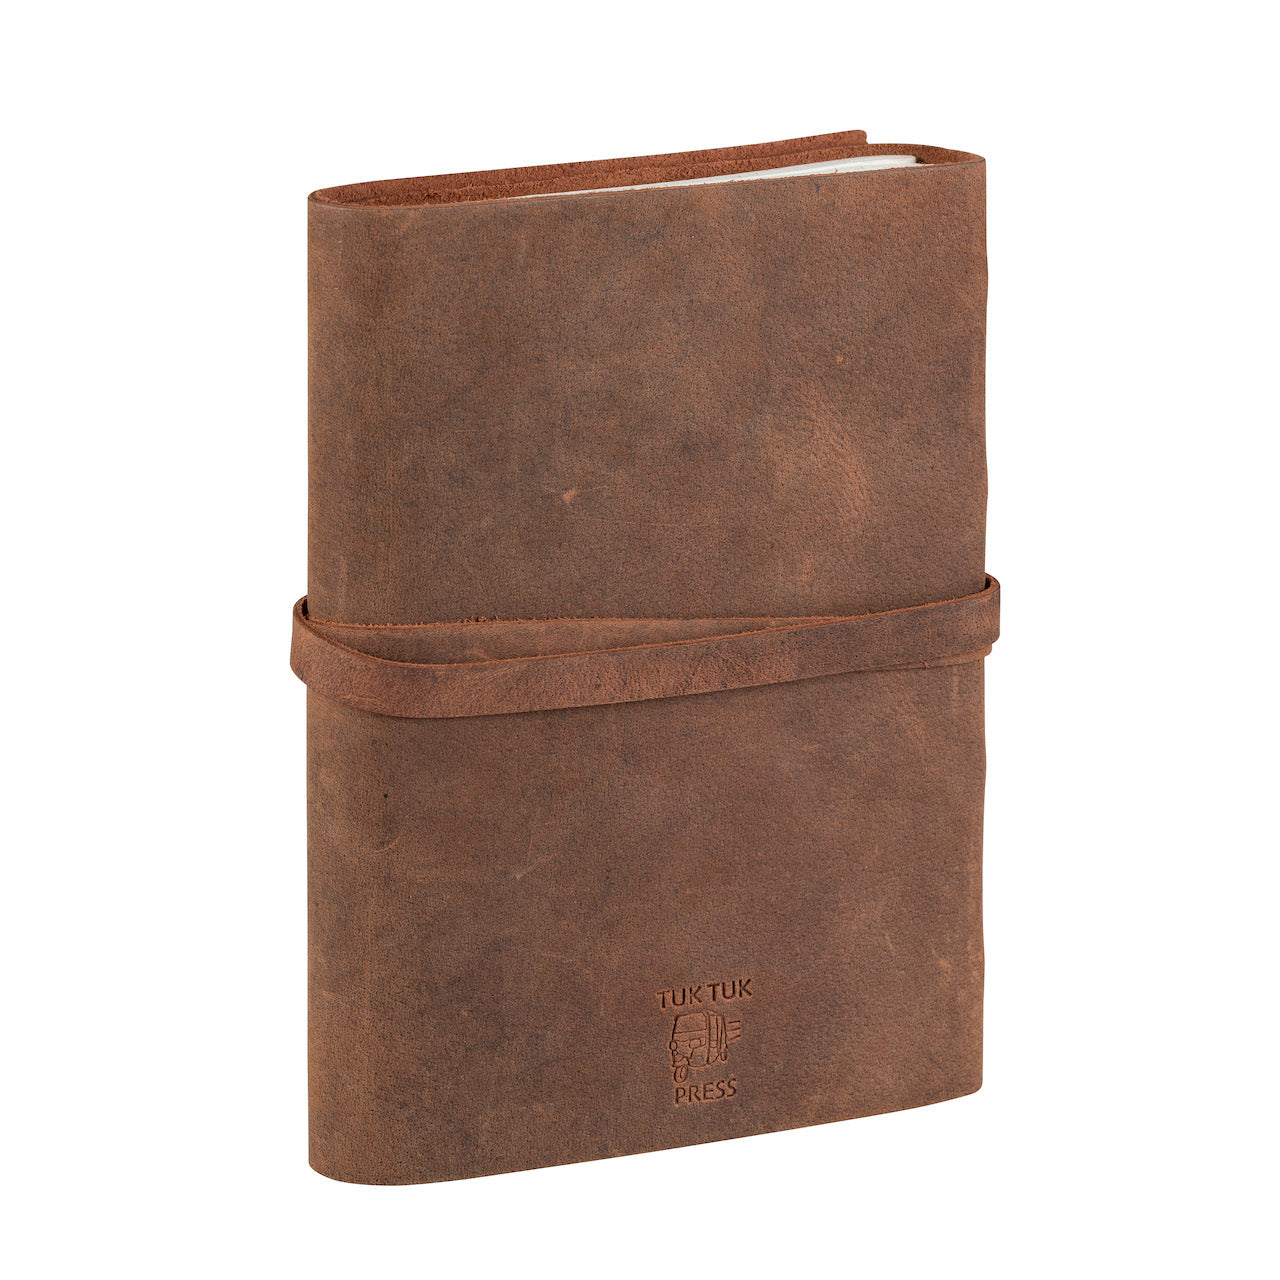 Back photo of a light tan Tuk Tuk Press buffalo leather handmade journal.